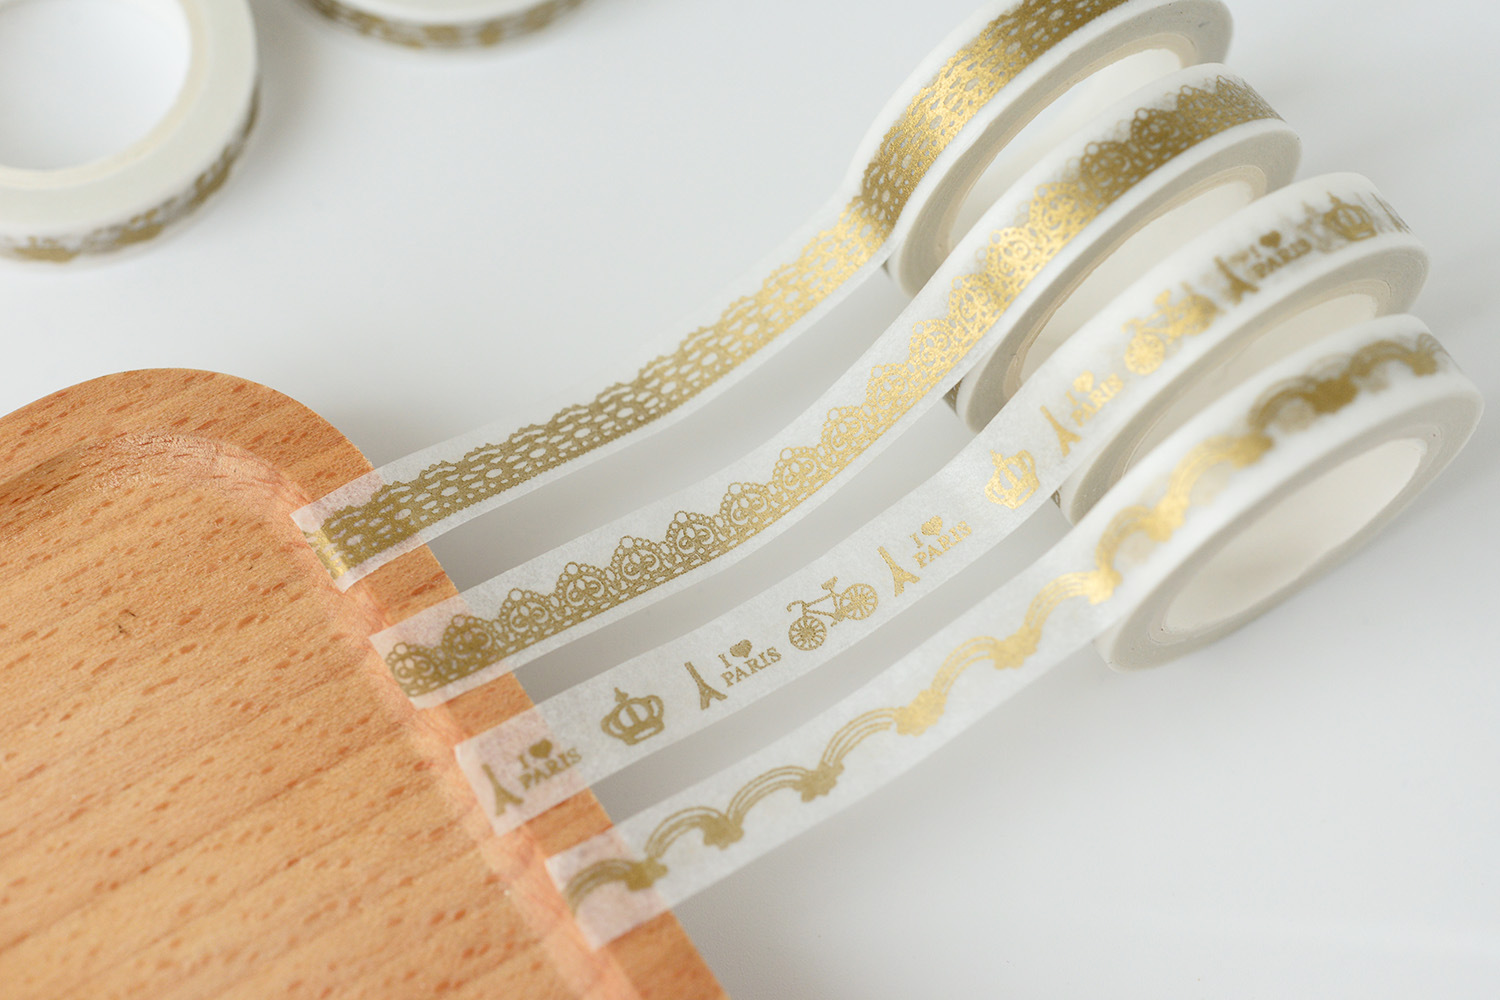 Kawaii Gold Foil Washi Tape Stickers Scrapbooking Masking Tape Decorative Adhesive Tape For School Office Stationery gold foil washi tape adhesive scrapbooking christmas party elk decoration tape kawaii photo album maskingtape